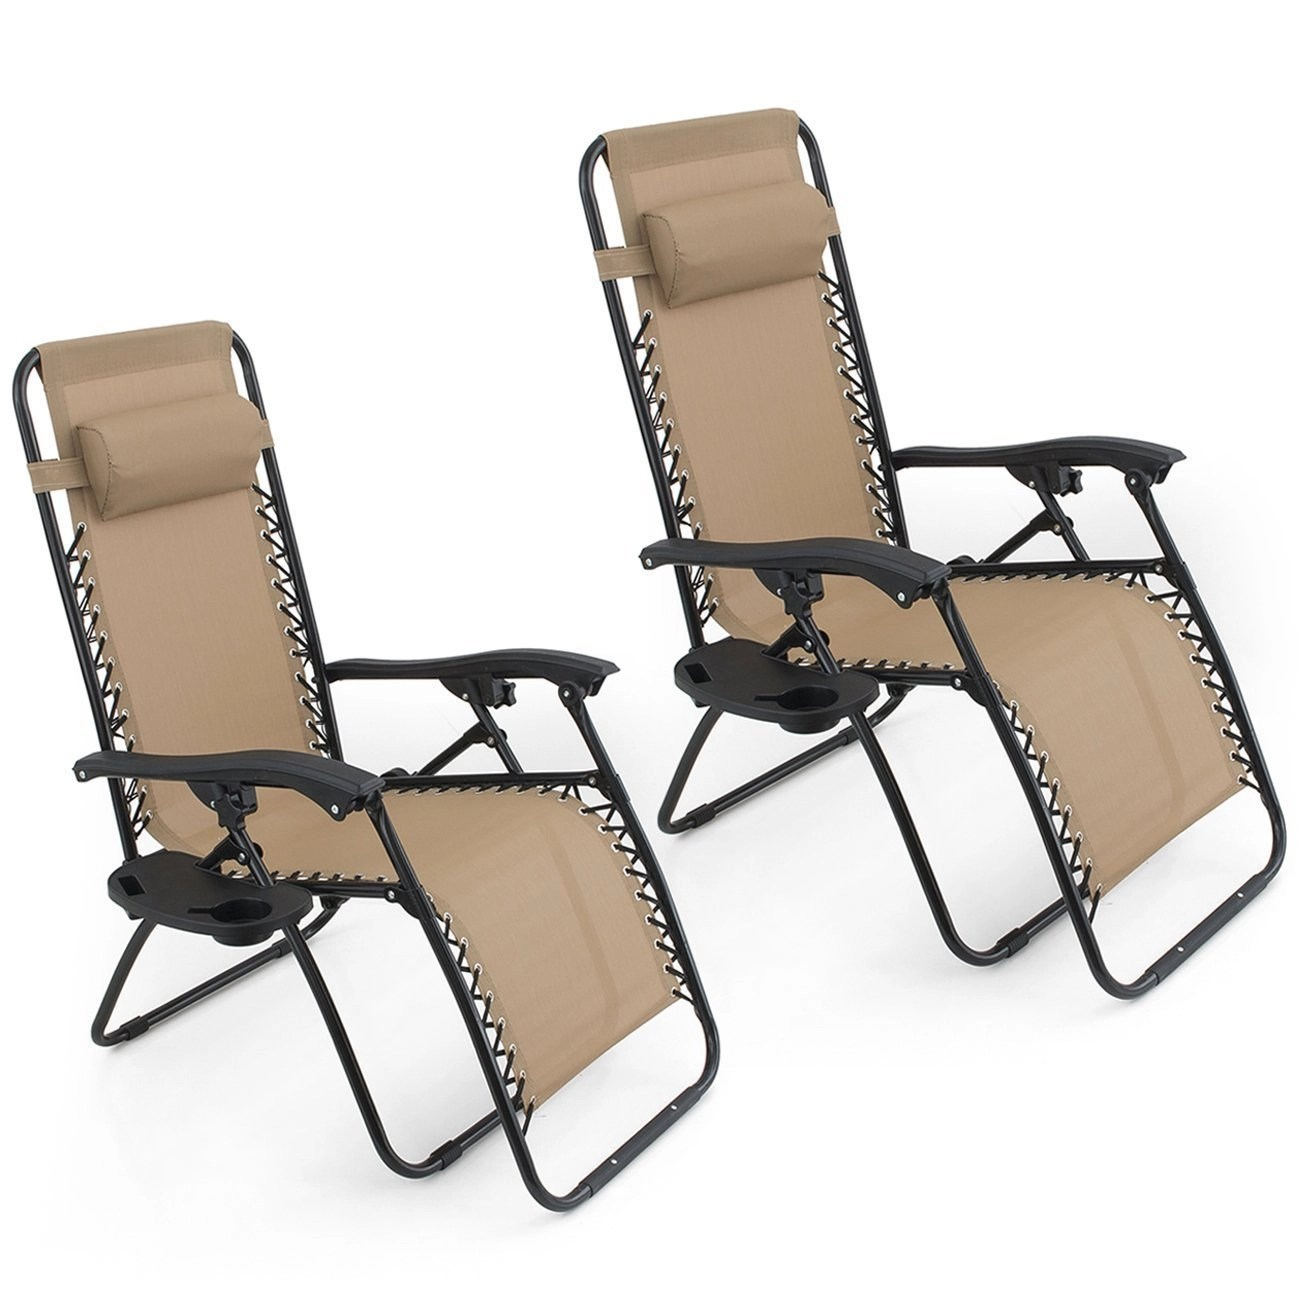 Arksen Zero Gravity Chair Pack of 2 Review